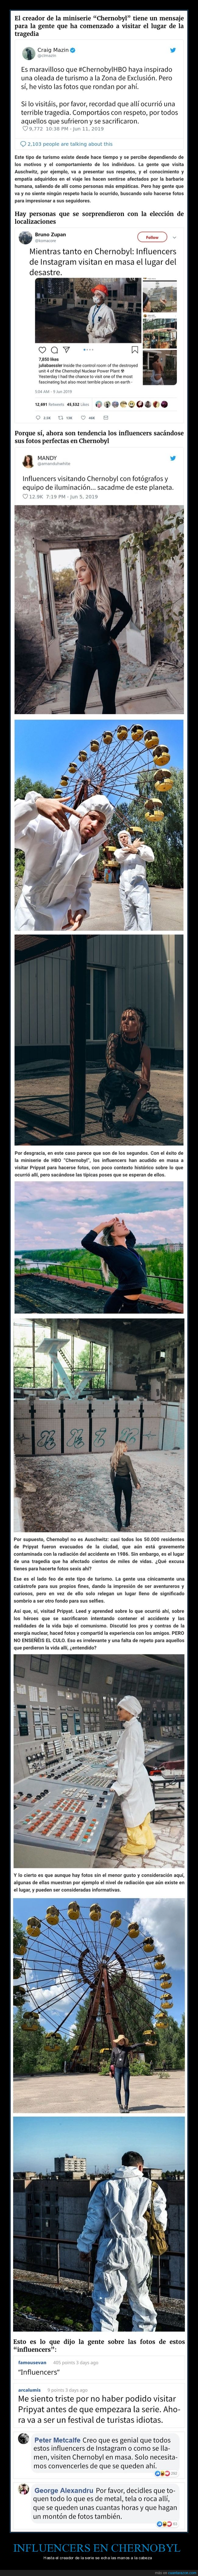 chernobyl,influencers,postureo